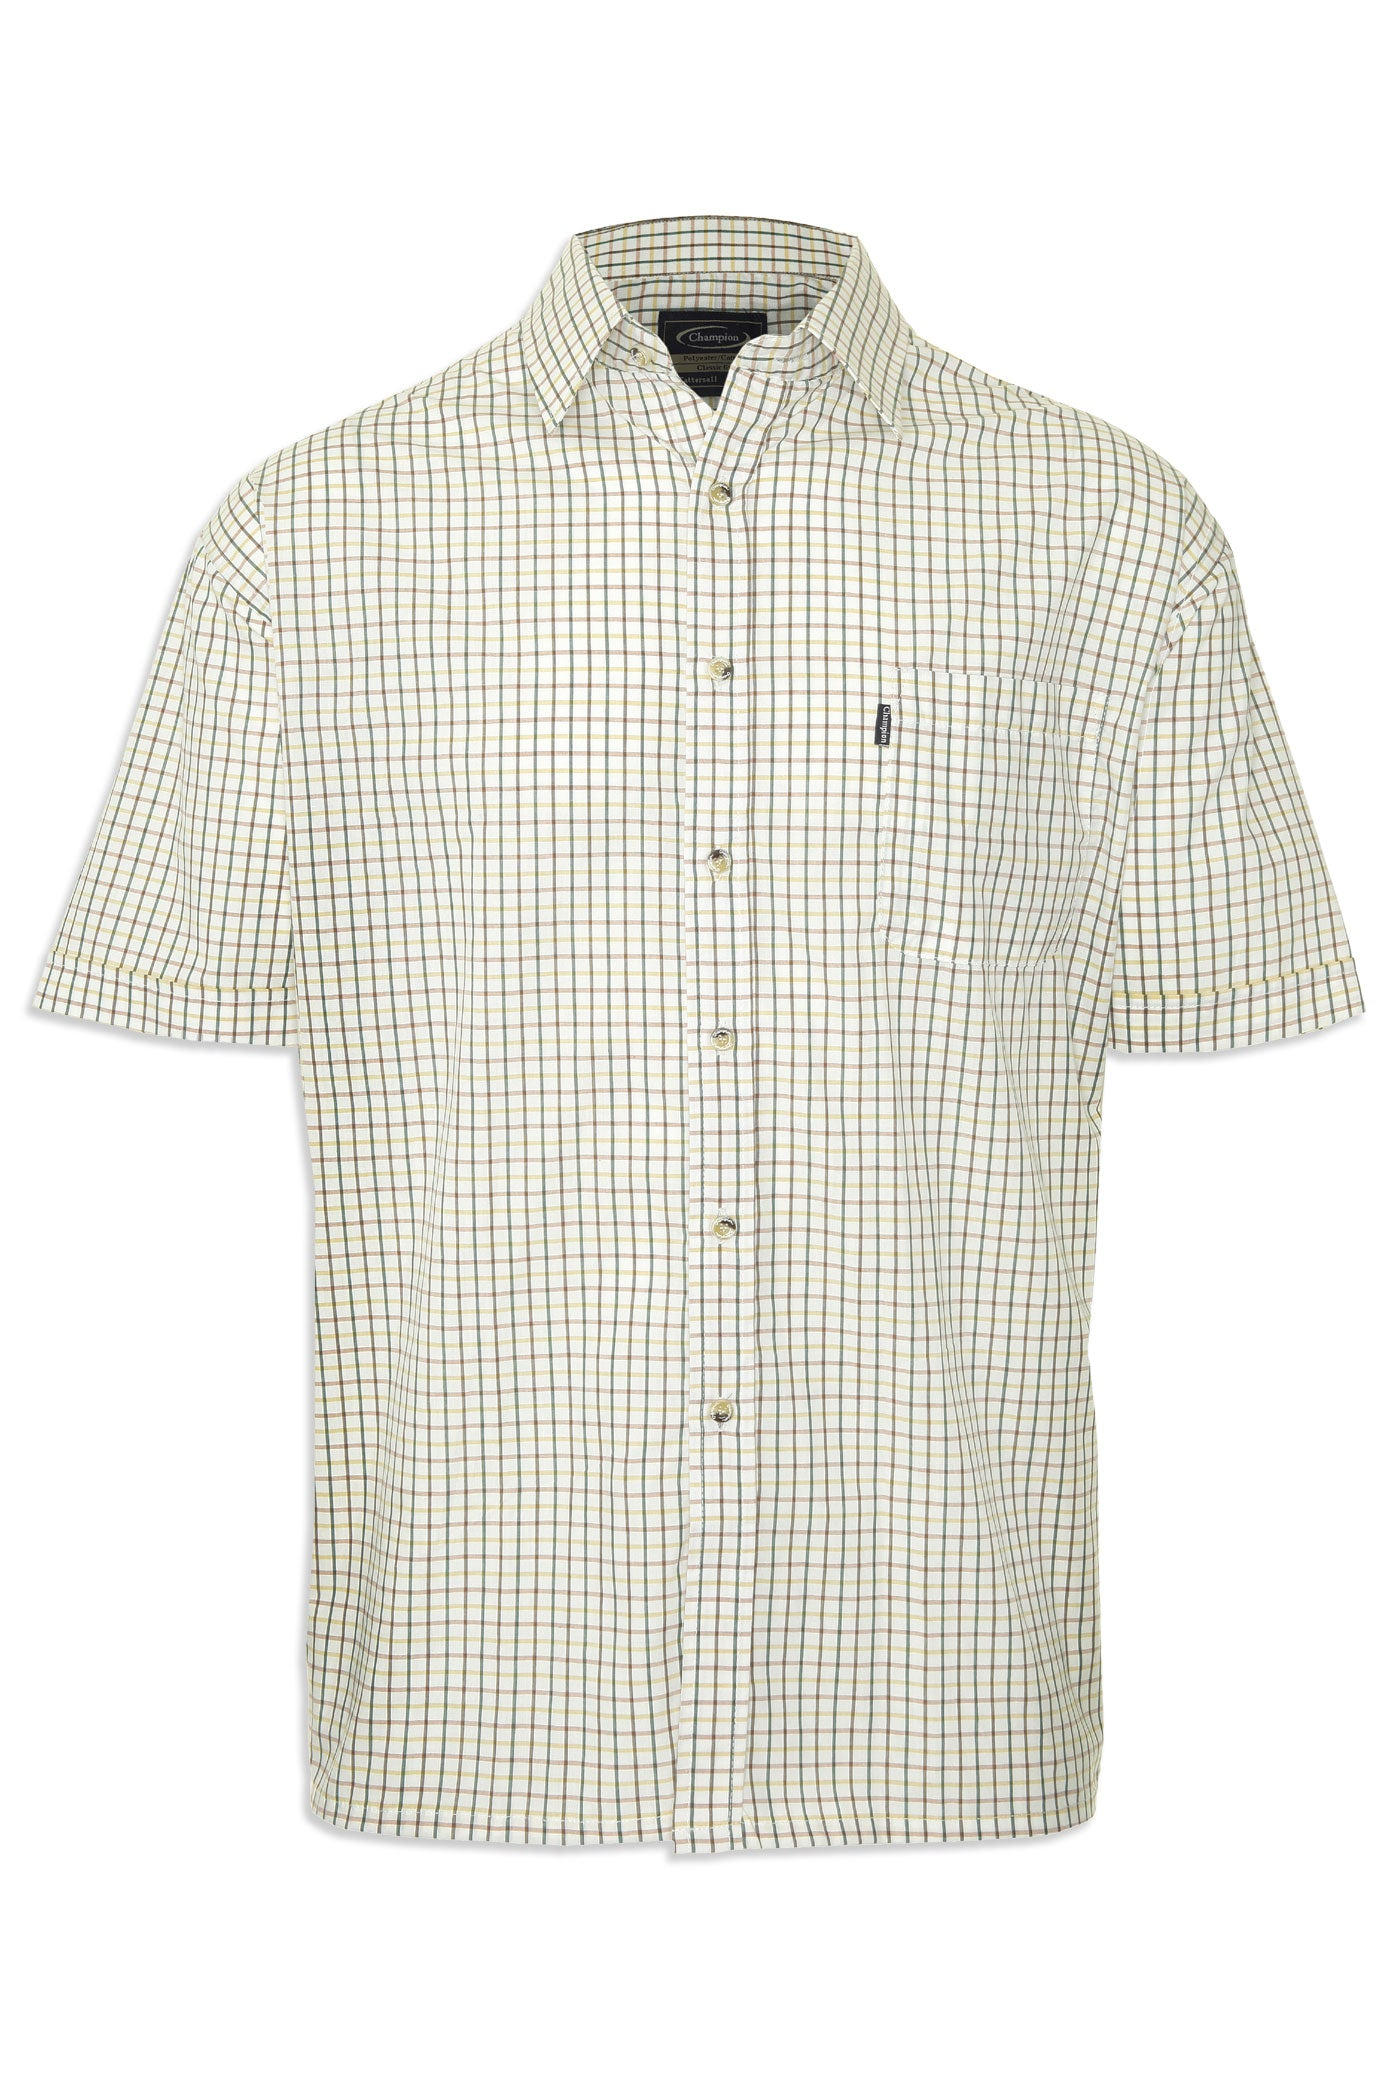 green check Champion summer Tattersall, the classic country tattersall check shirt with short sleeves, ideal for summer